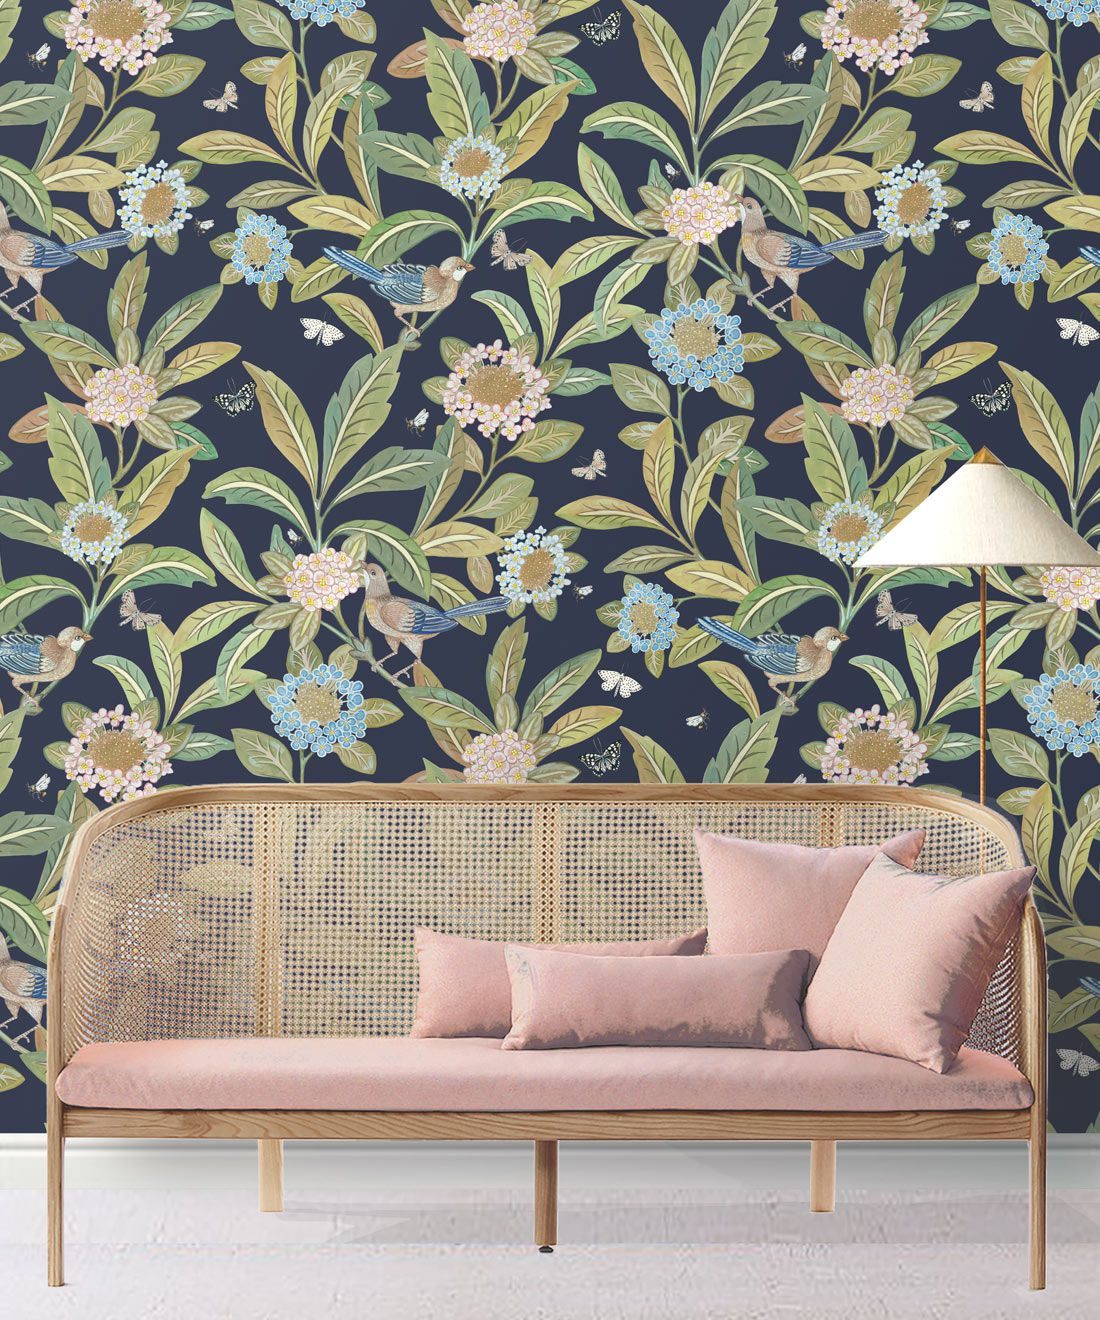 Summer Garden Wallpaper • Navy Wallpaper • Floral Wallpaper Insitu behind pink sofa